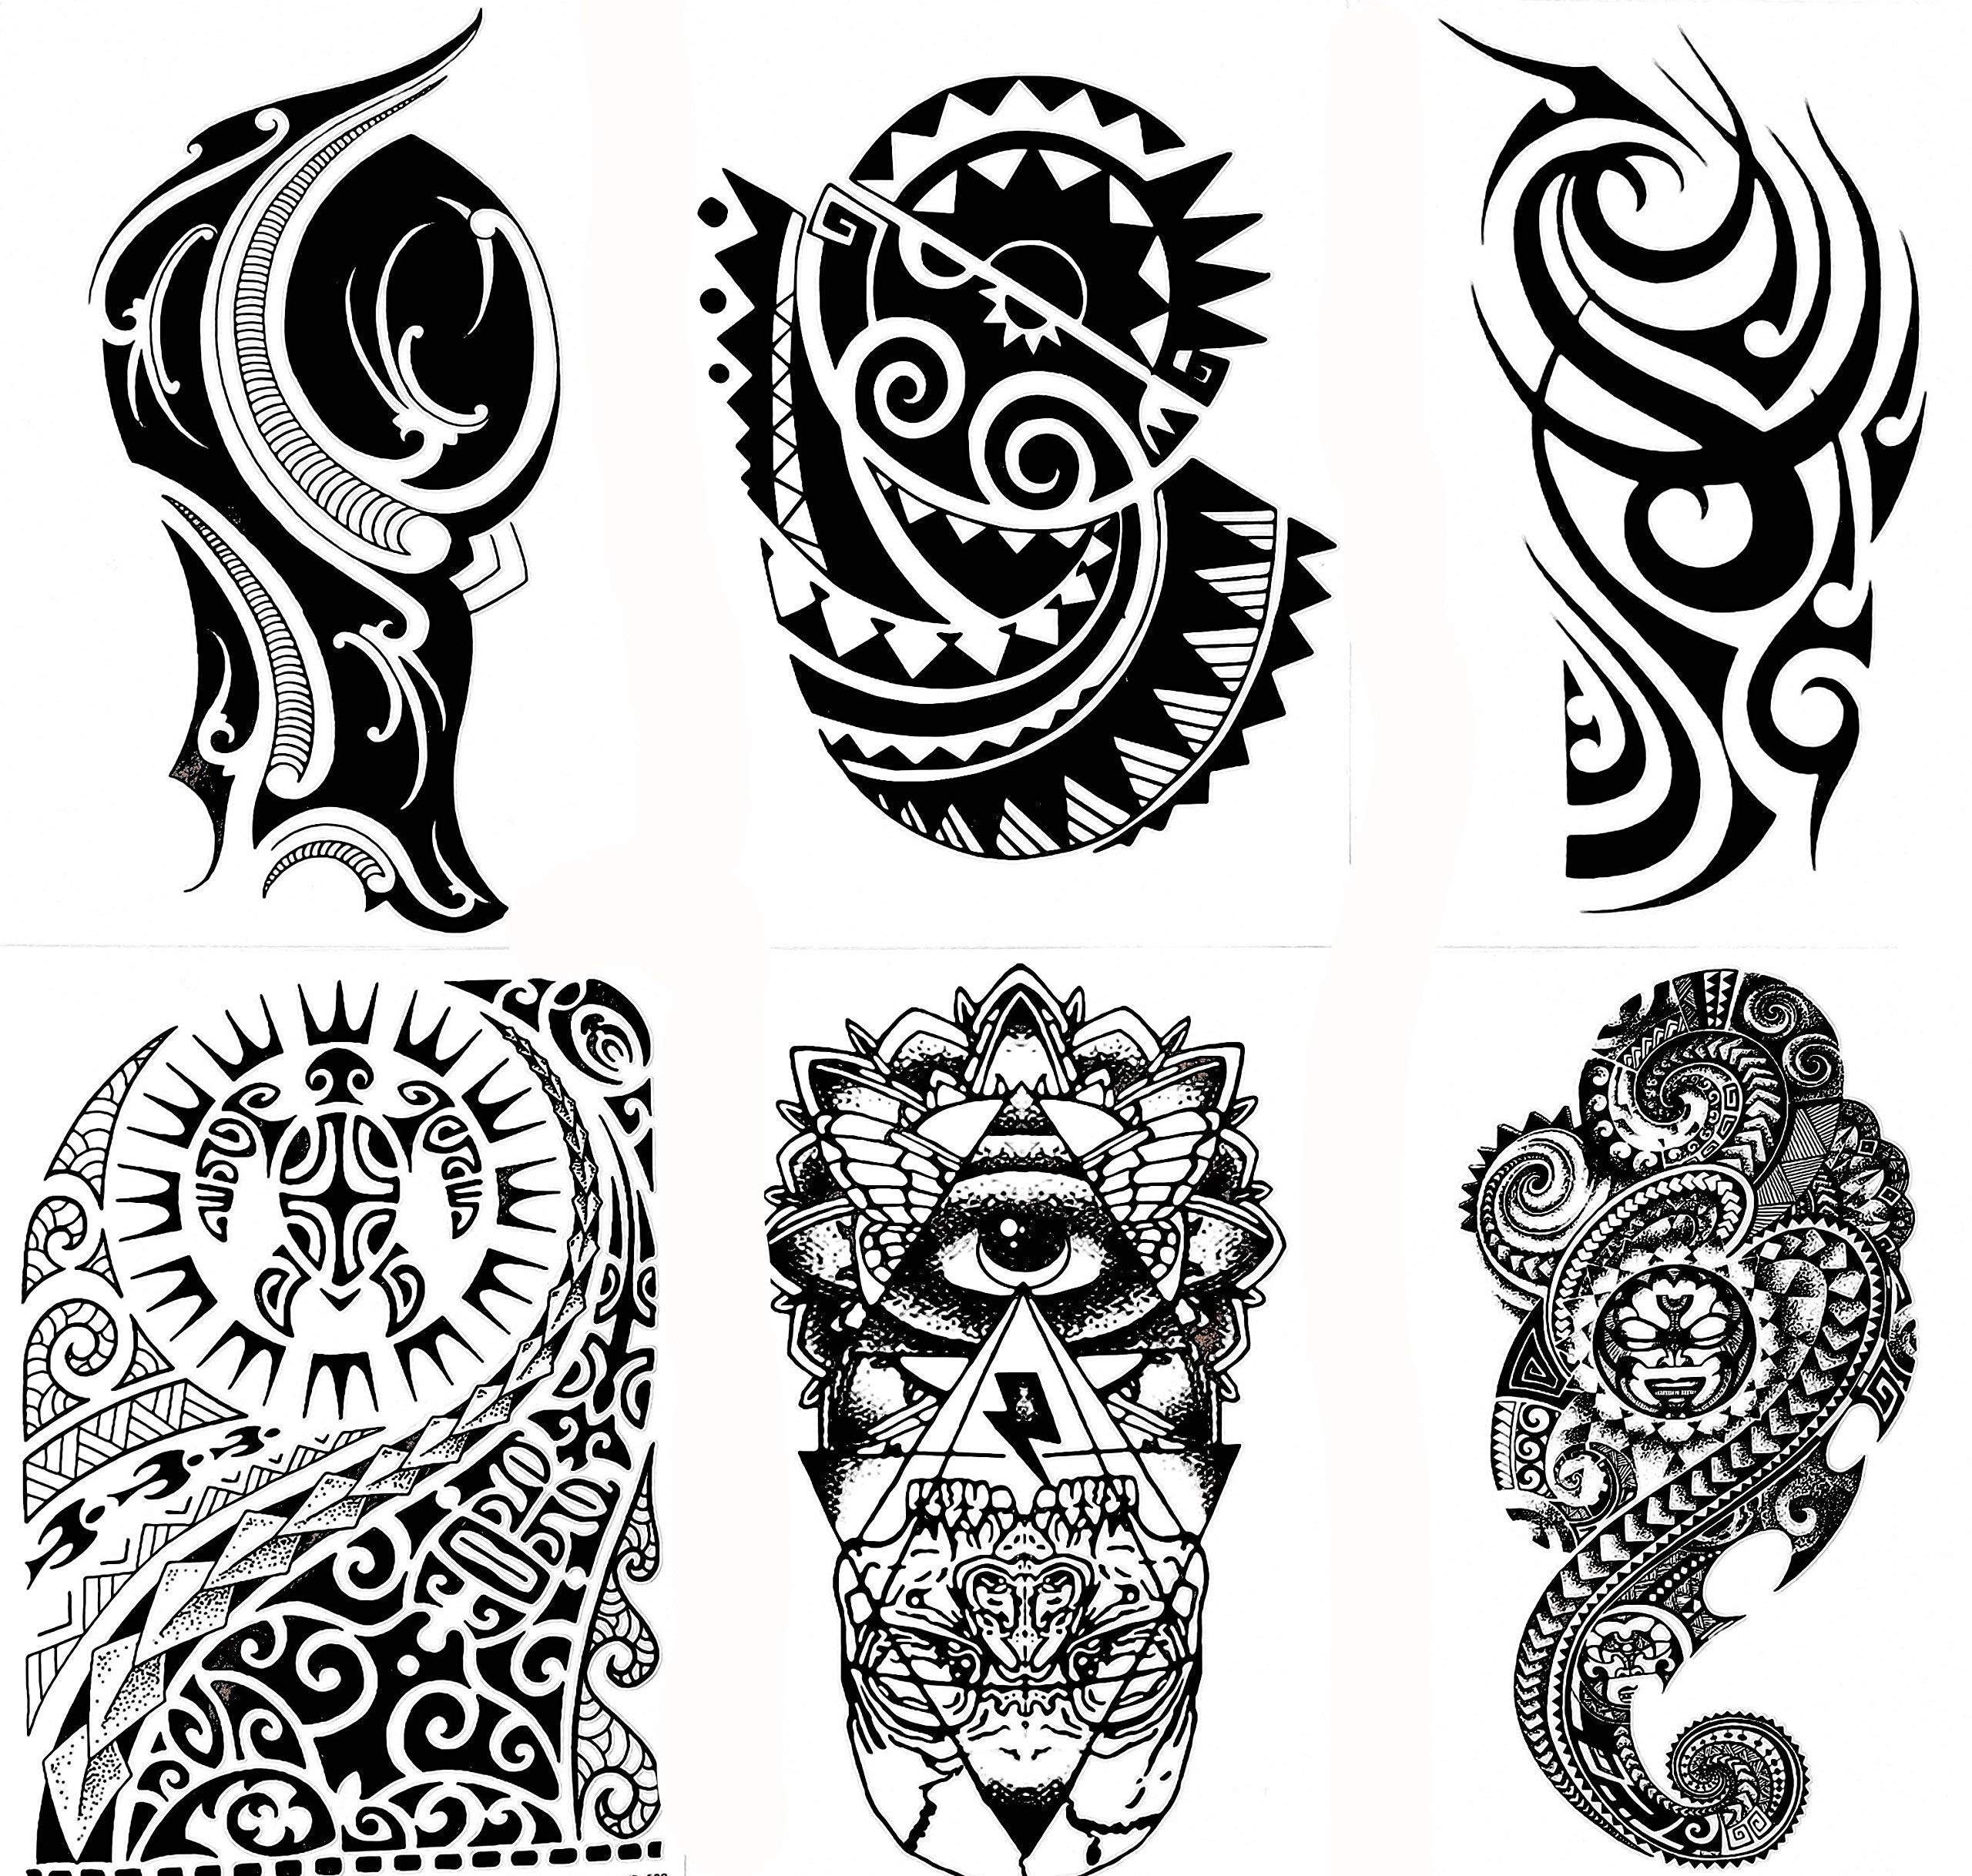 f7a1b34c8891d Gilded Girl 6 Large Tribal Temporary Tattoos Realistic Designs for  Arm/Back/Shoulder Waterproof